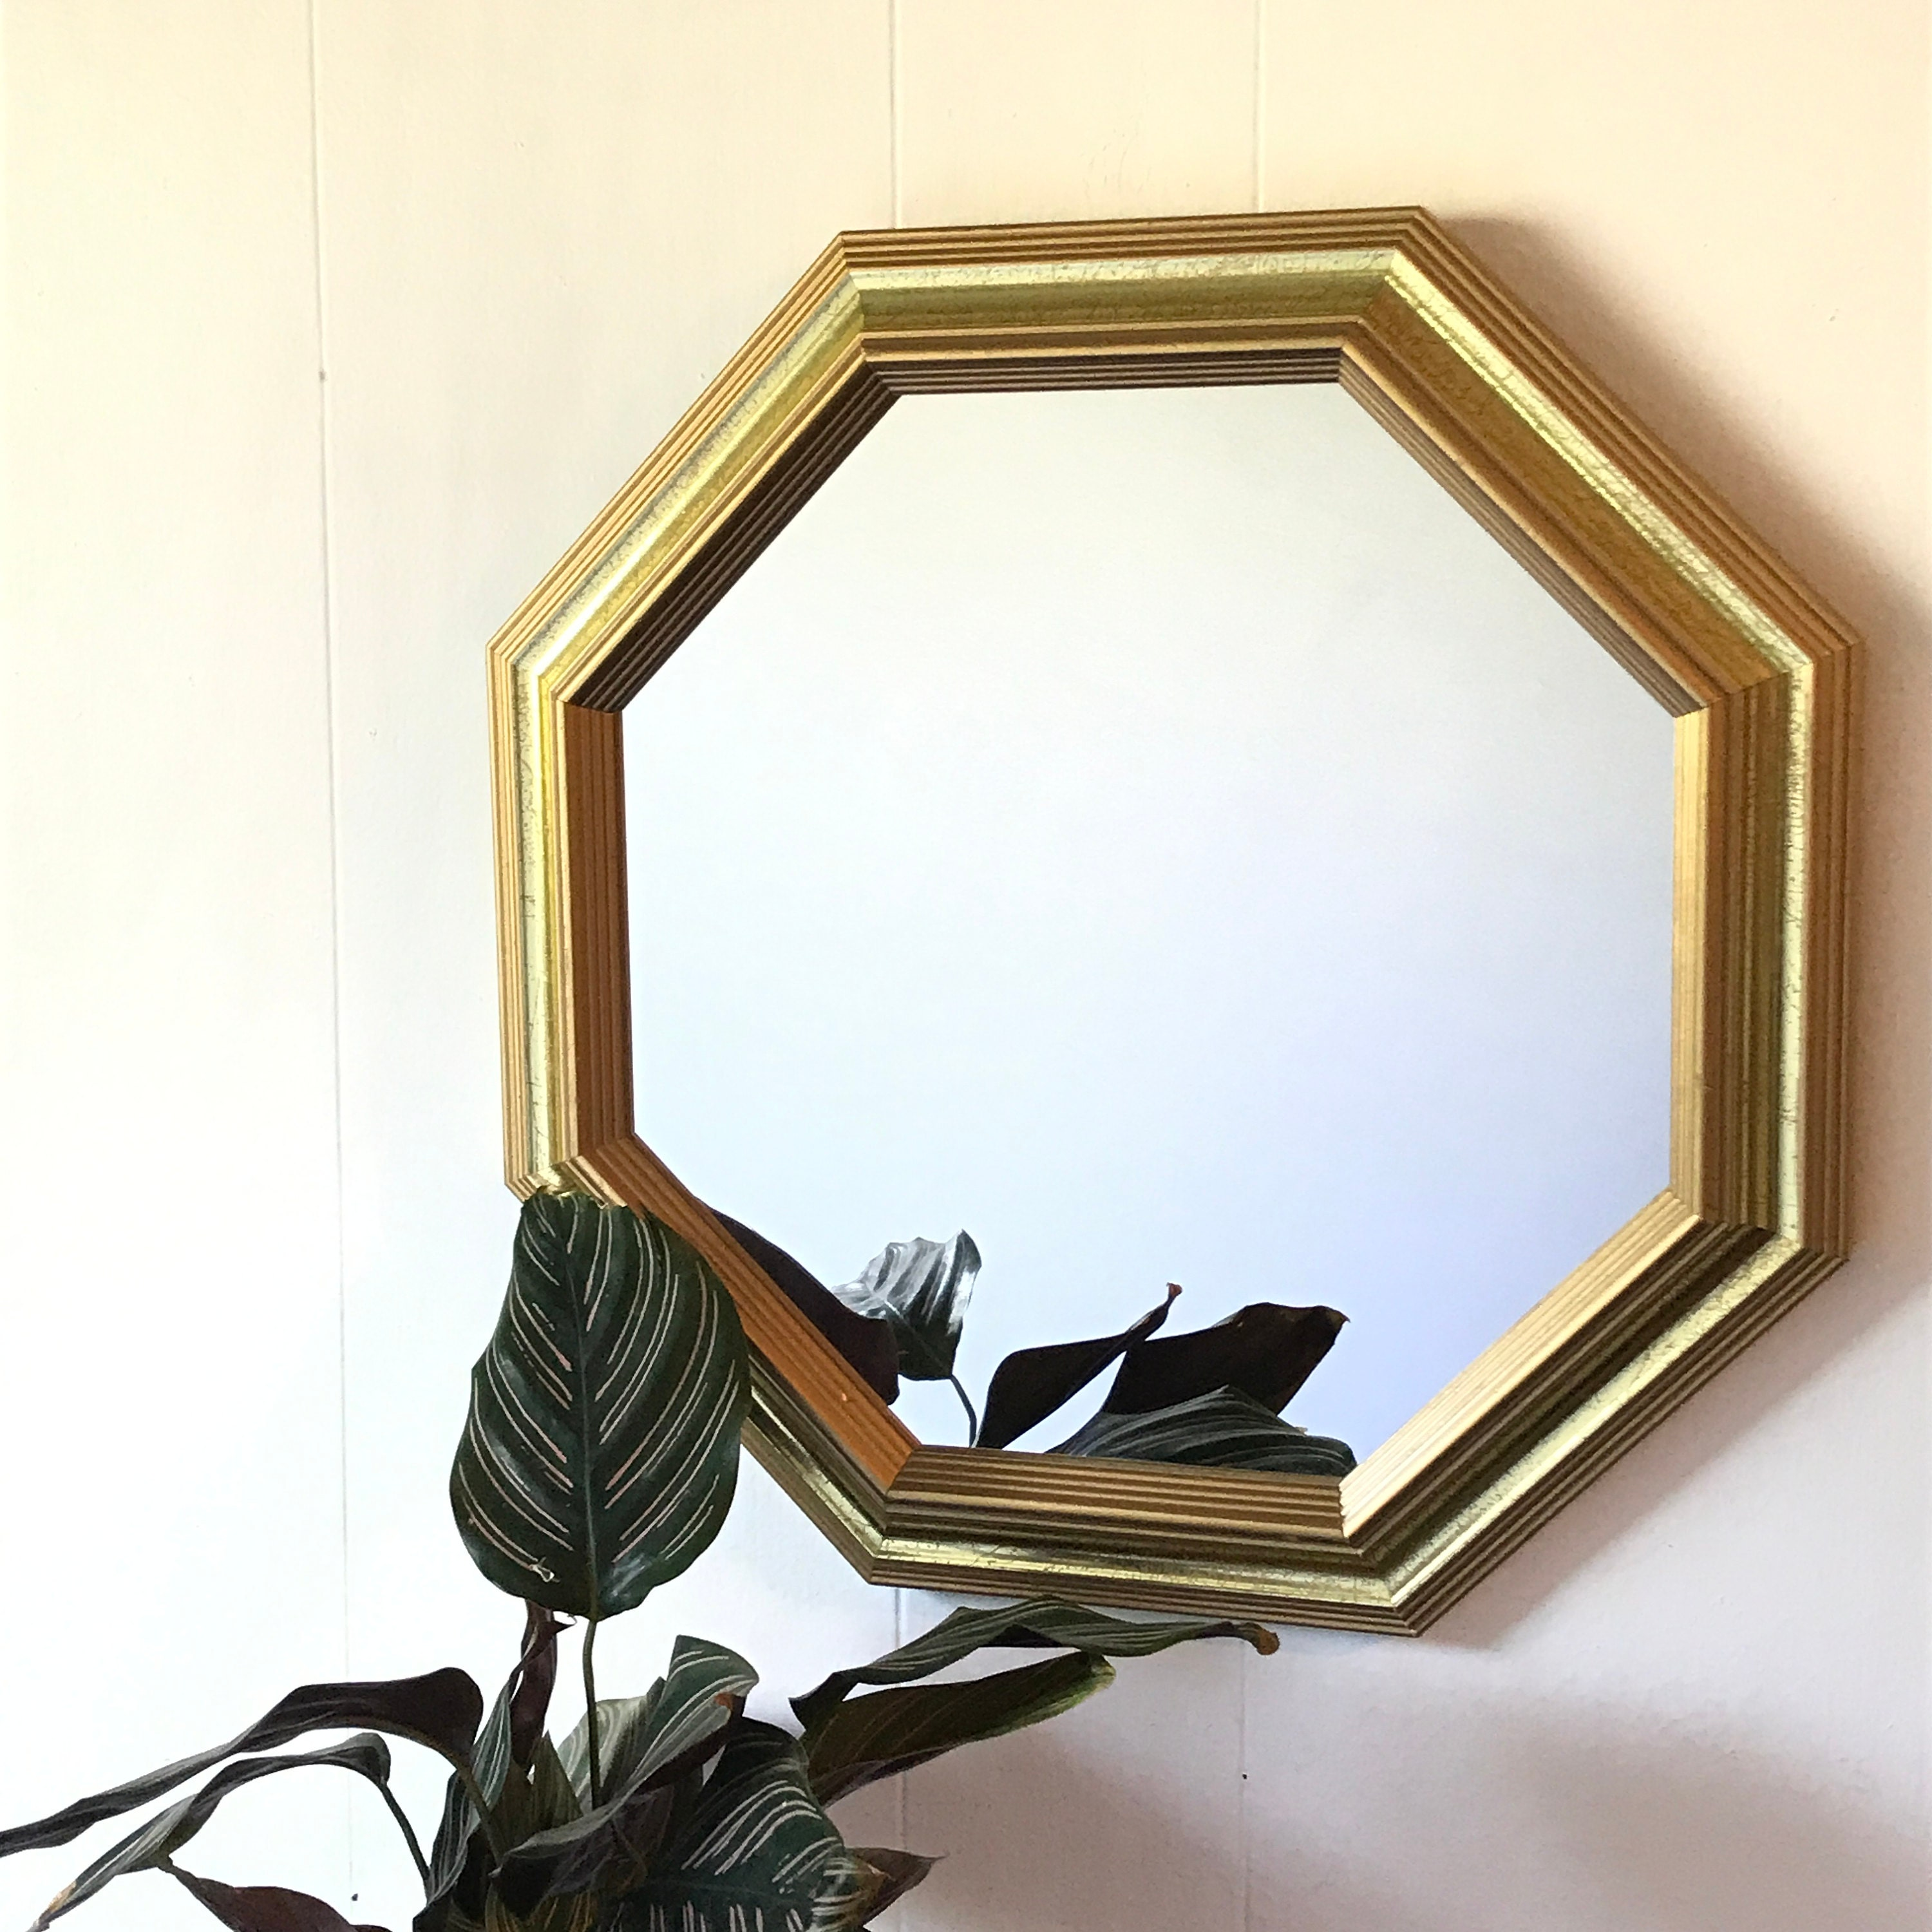 I always use mirrors in my decorating - they add depth and light in a space.